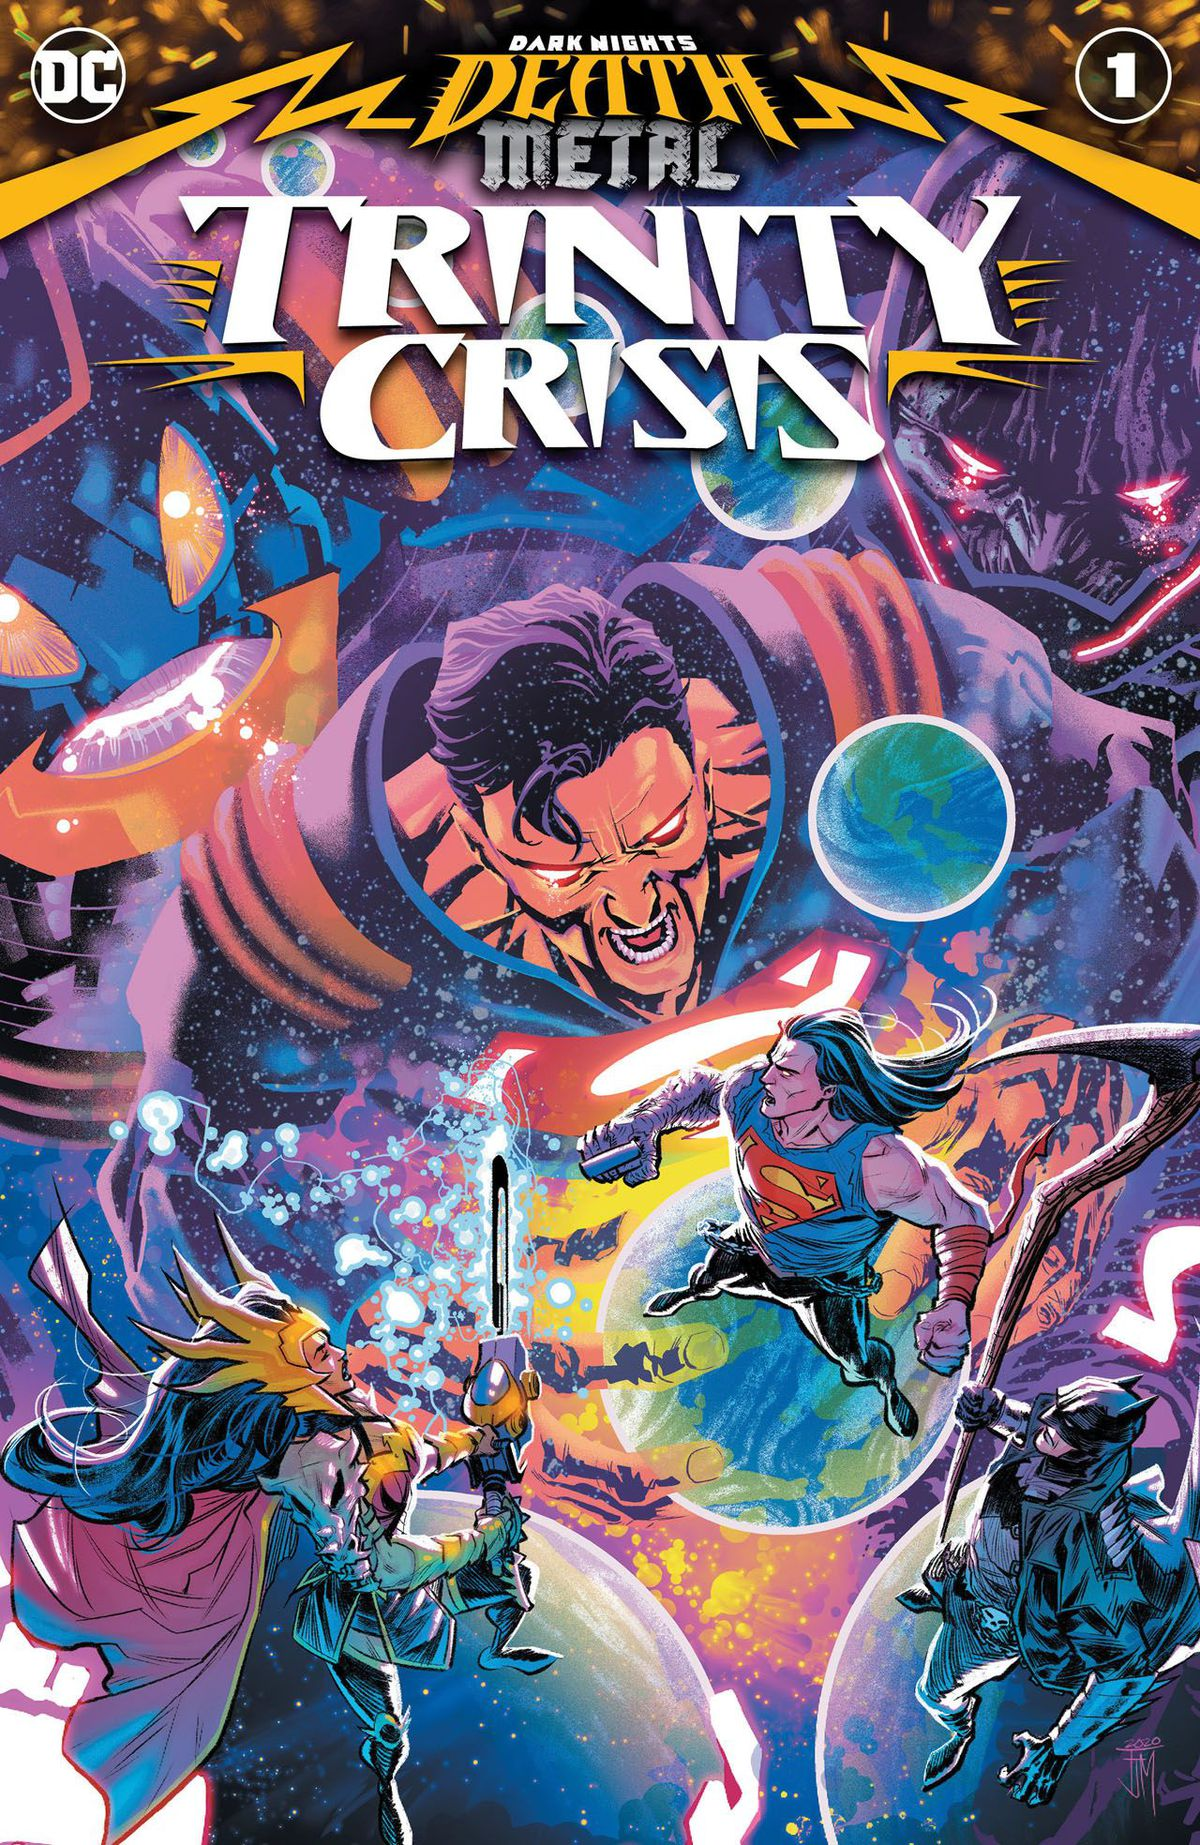 Superman, Batman, and Wonder Woman face the Anti-Monitor, Superboy Prime, and Darkseid on the cover of Dark Nights: Death Metal Trinity Crisis, DC Comics (2020).